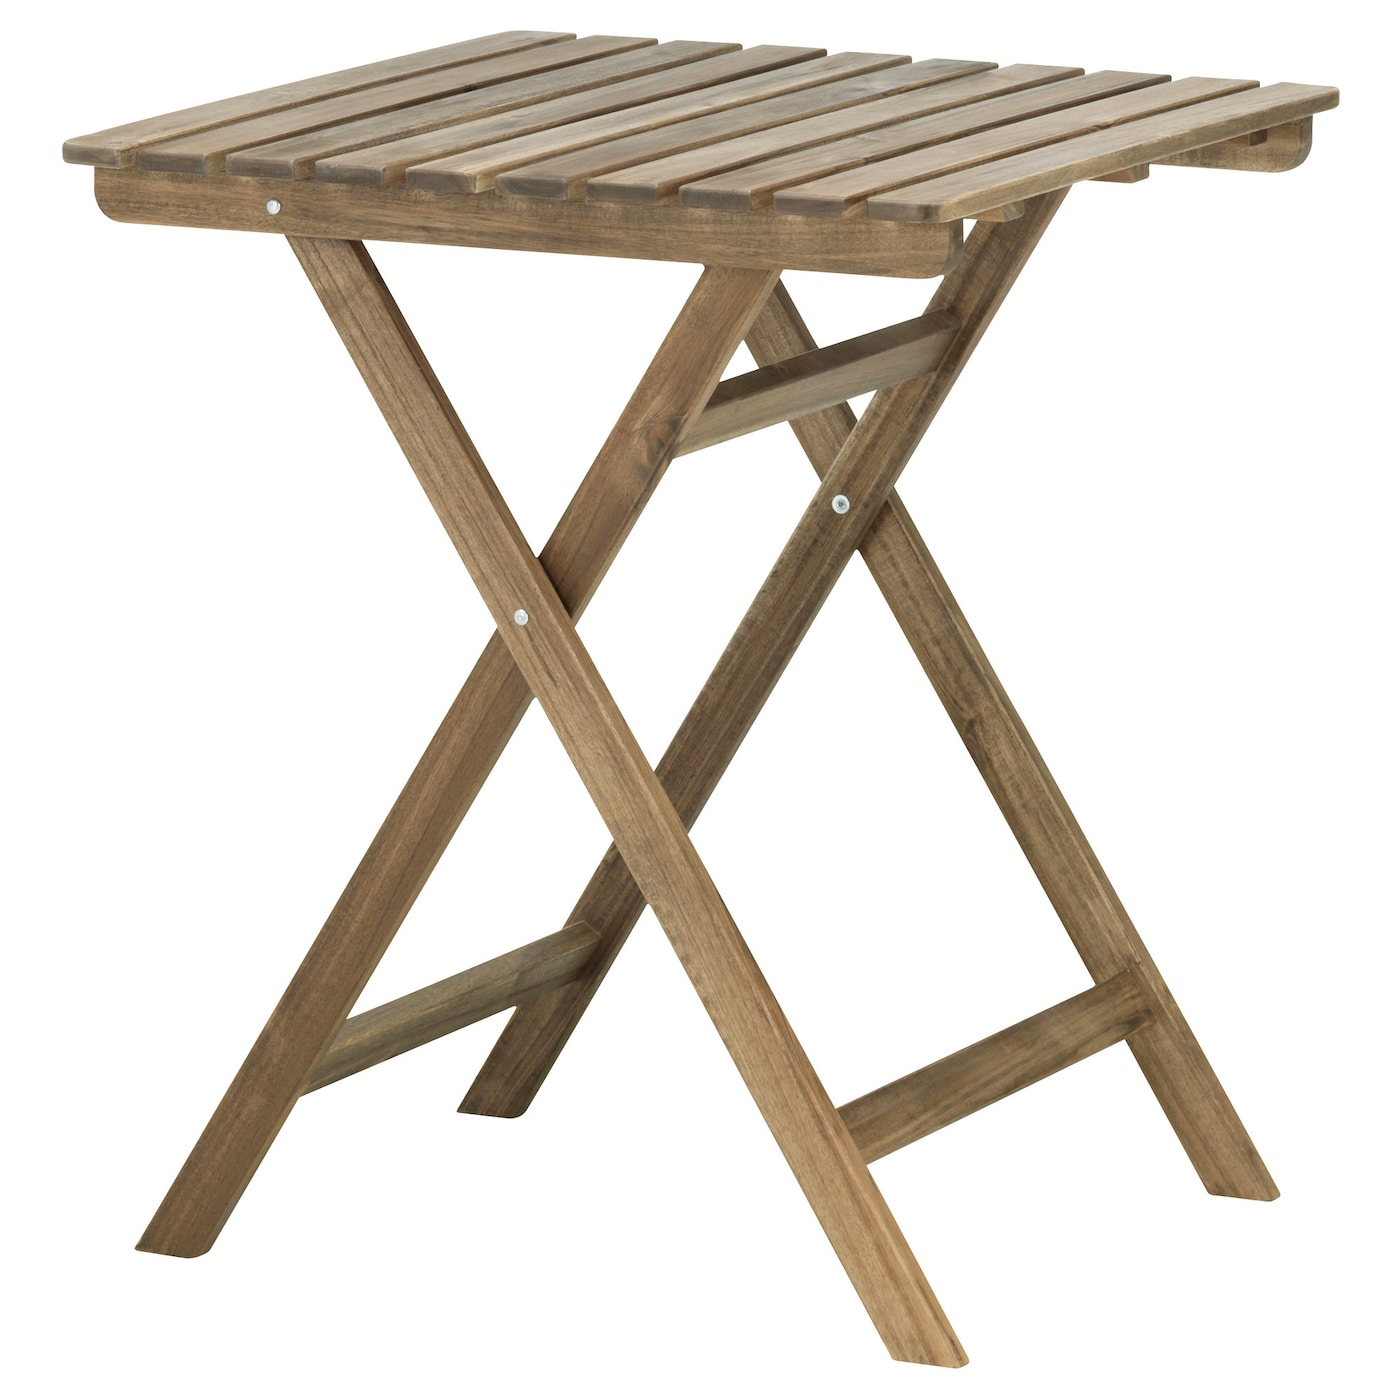 IKEA ASKHOLMEN table, outdoor